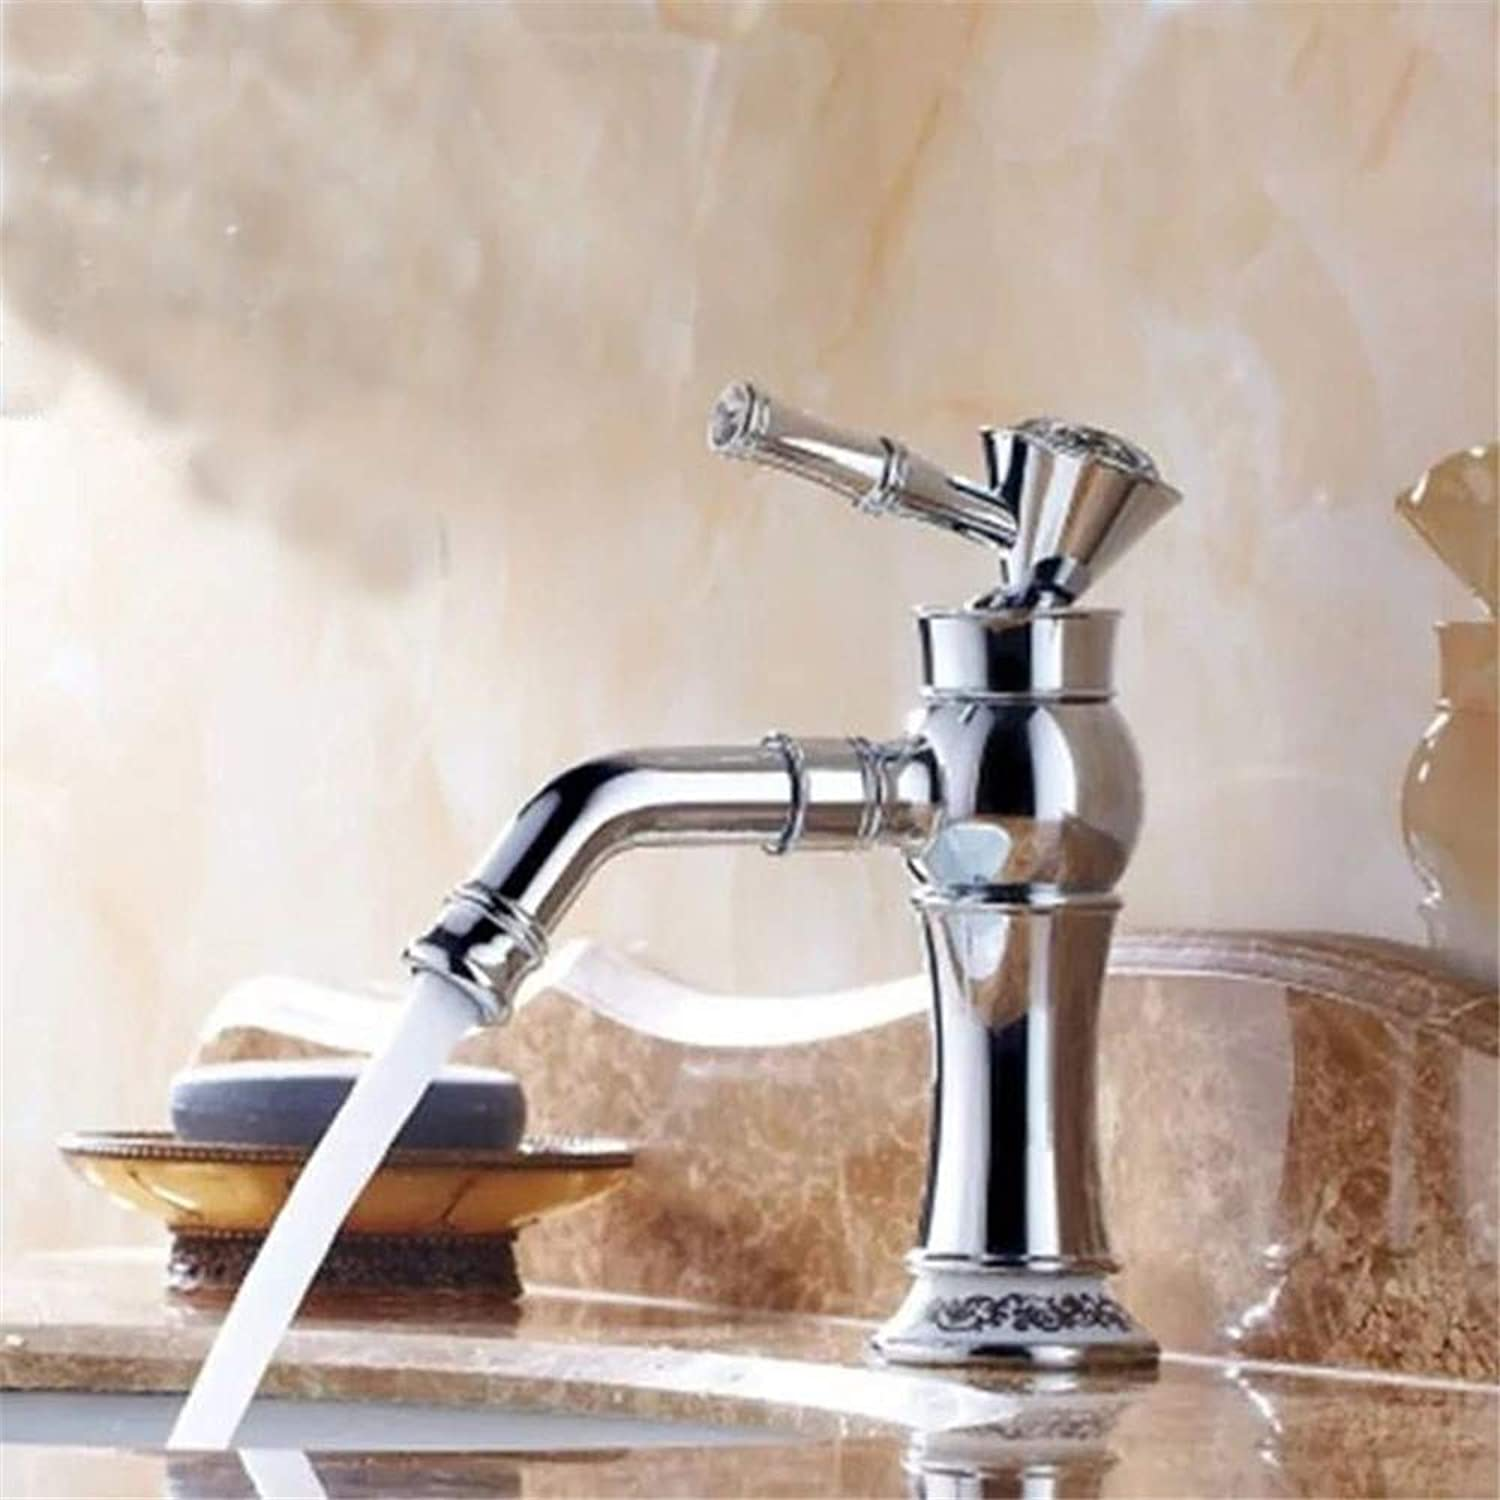 YAWEDA Bathroom golden Noodle Pot Faucet Kitchen Table Pot Cold Water Mixer Single Handle Bathroom Faucet,Electroplating Dwarf